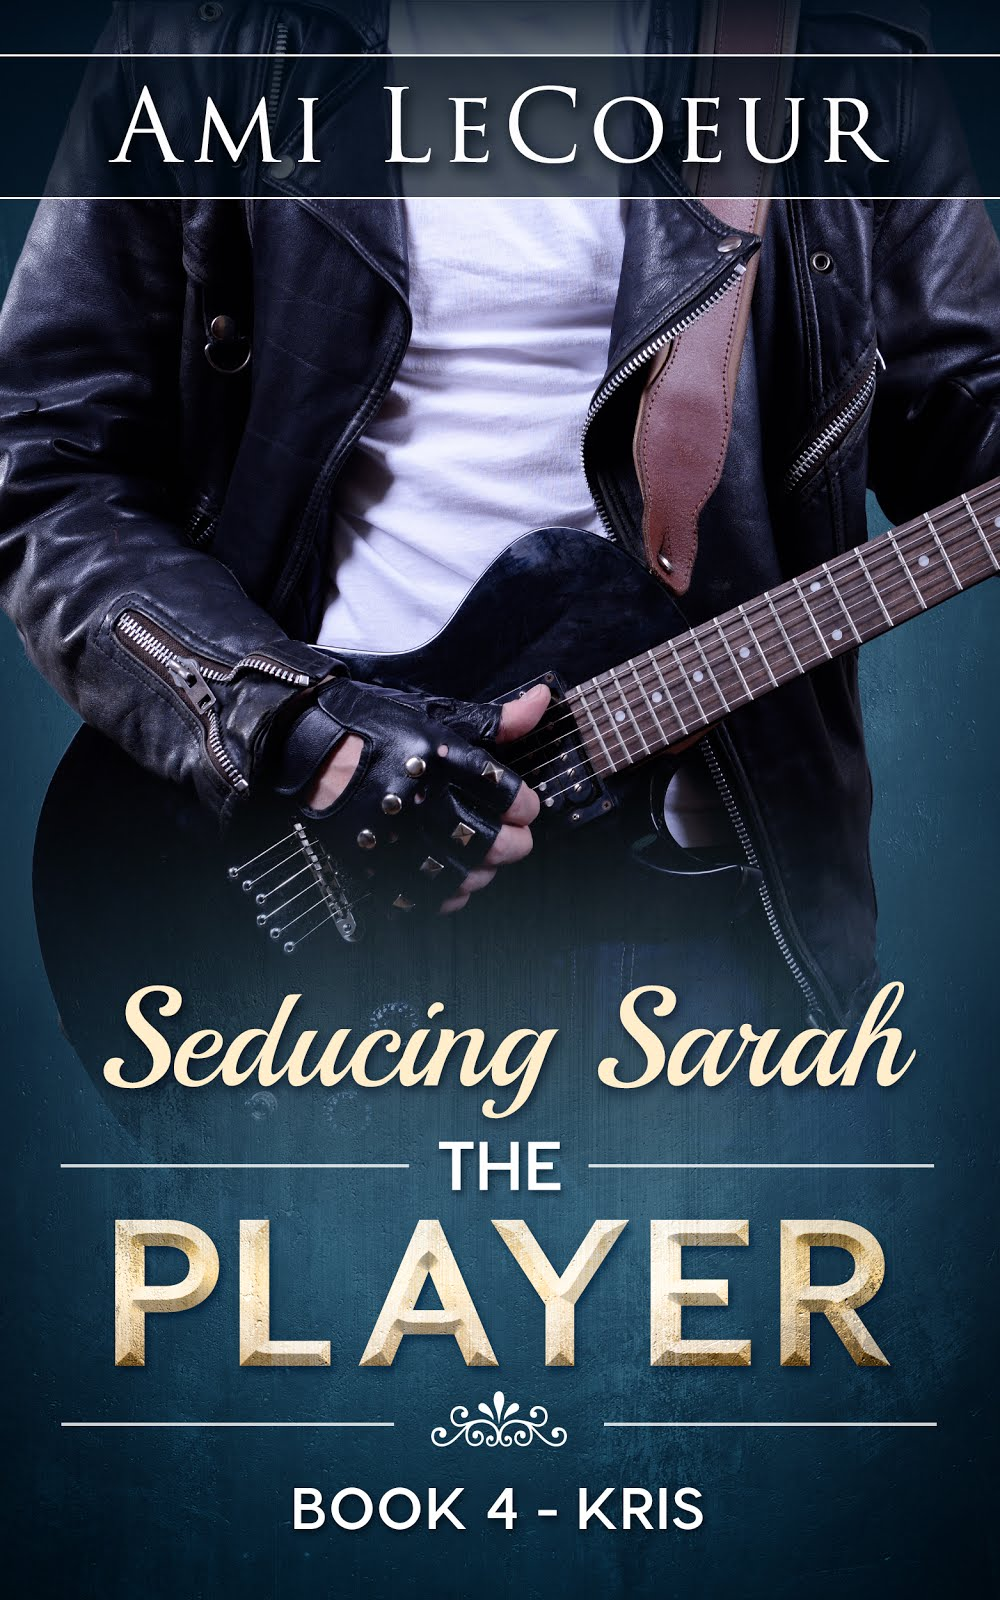 Seducing Sarah Book 4 - The Player: Kris